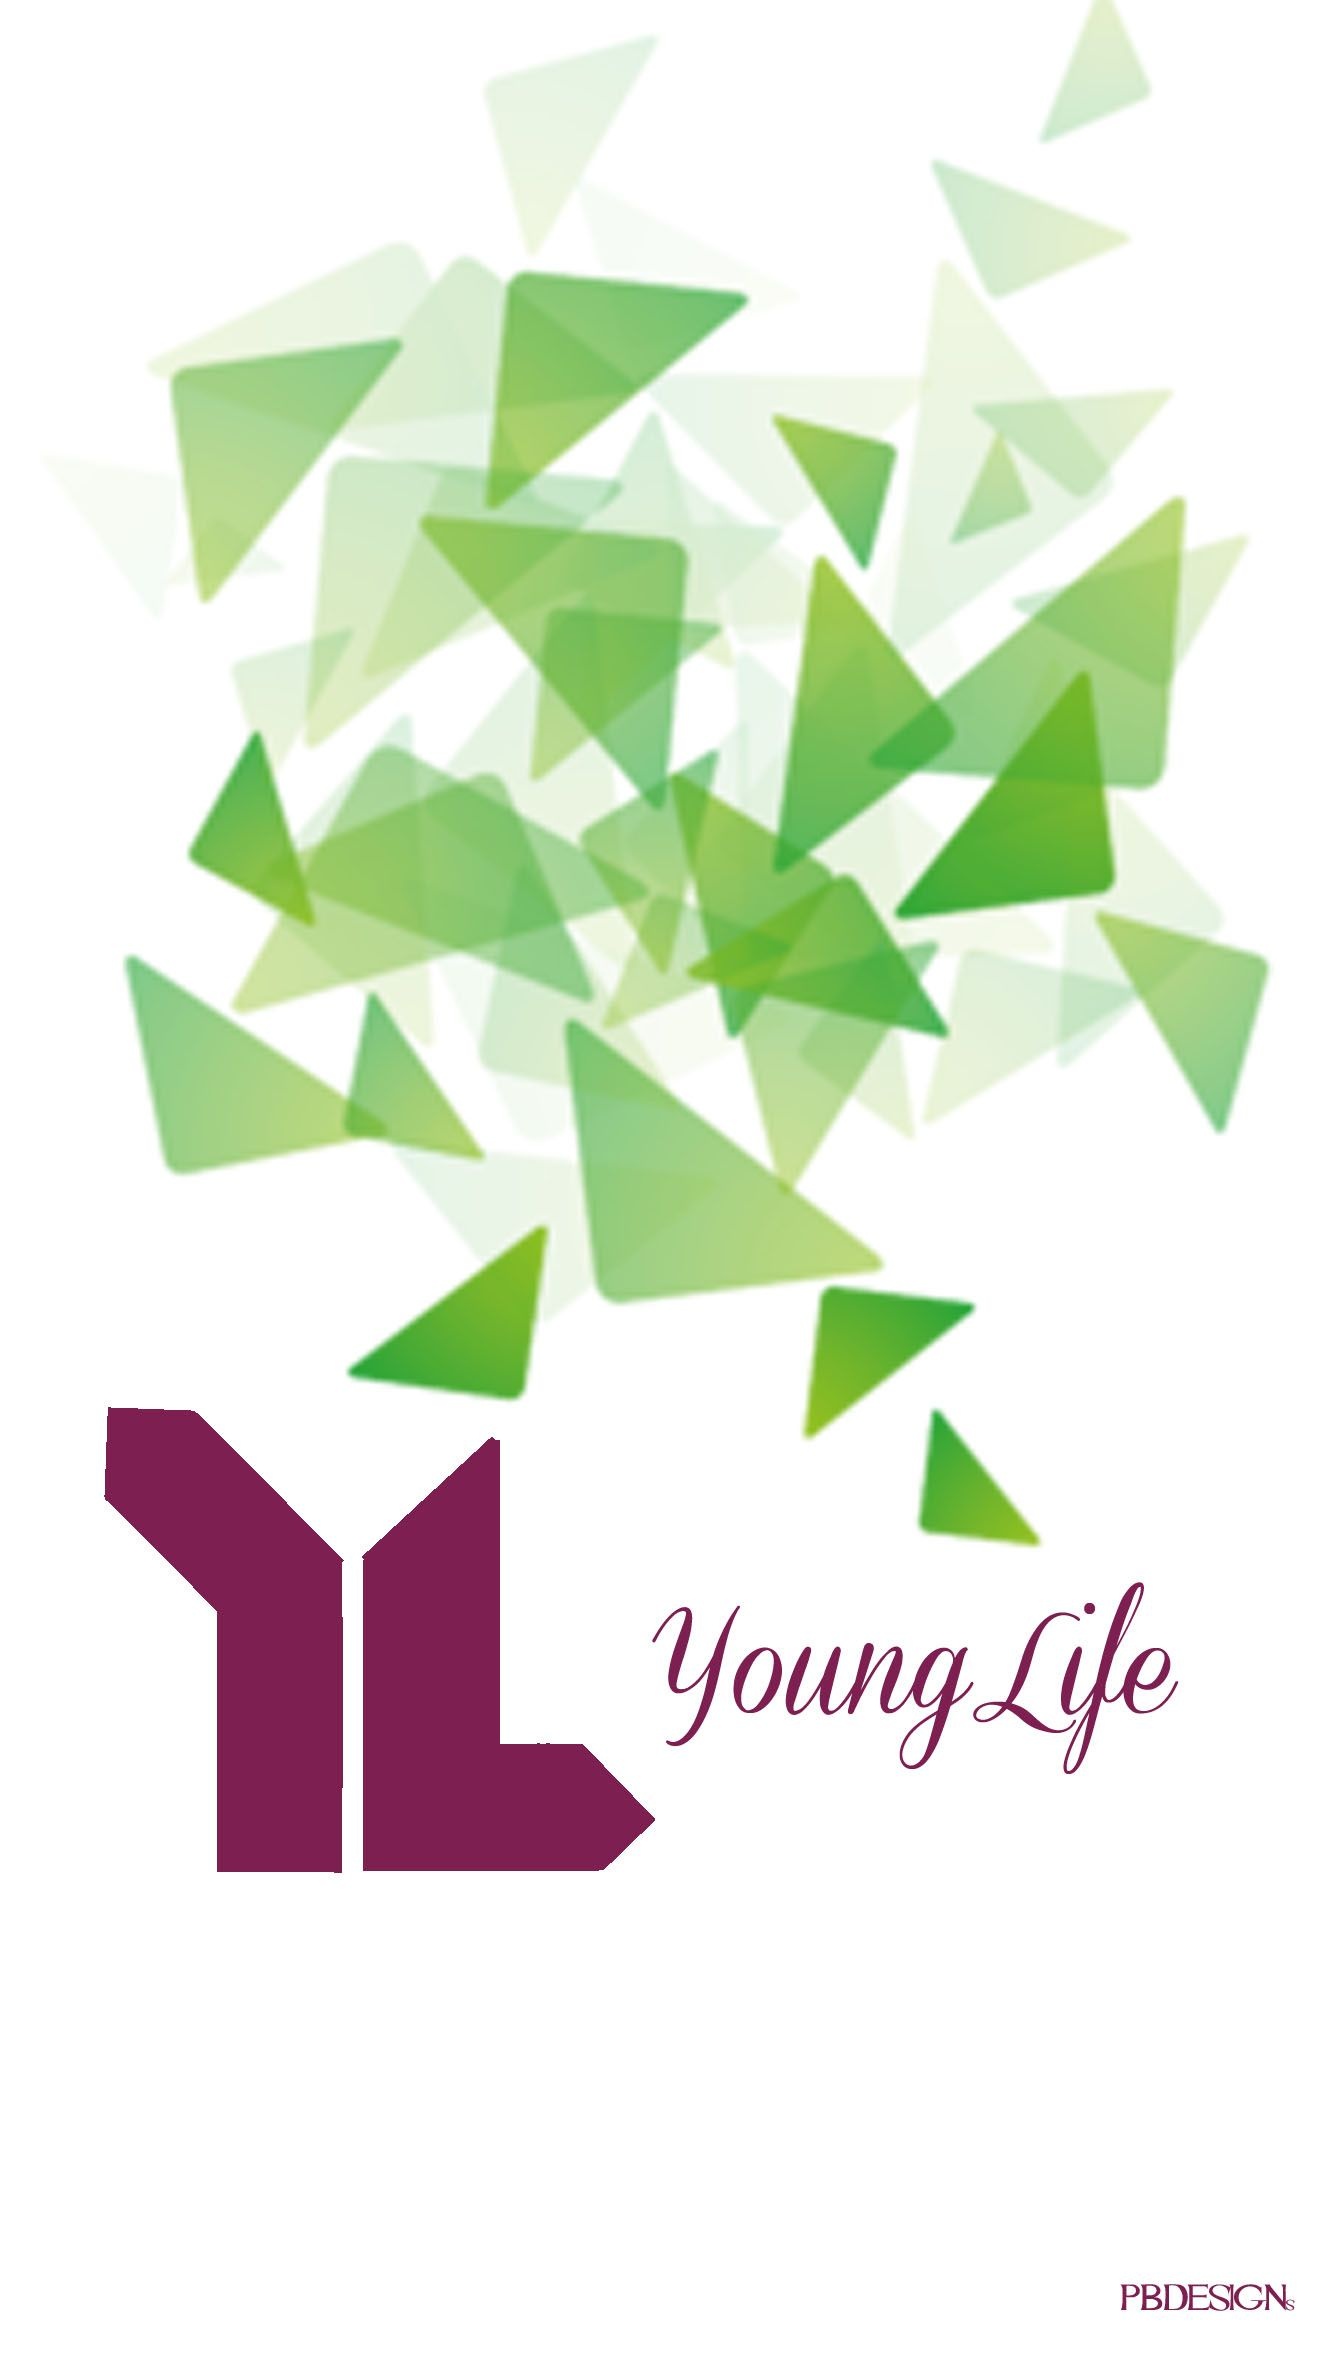 iPhone 5 Wallpaper - YoungLife Design Follow me for more YL